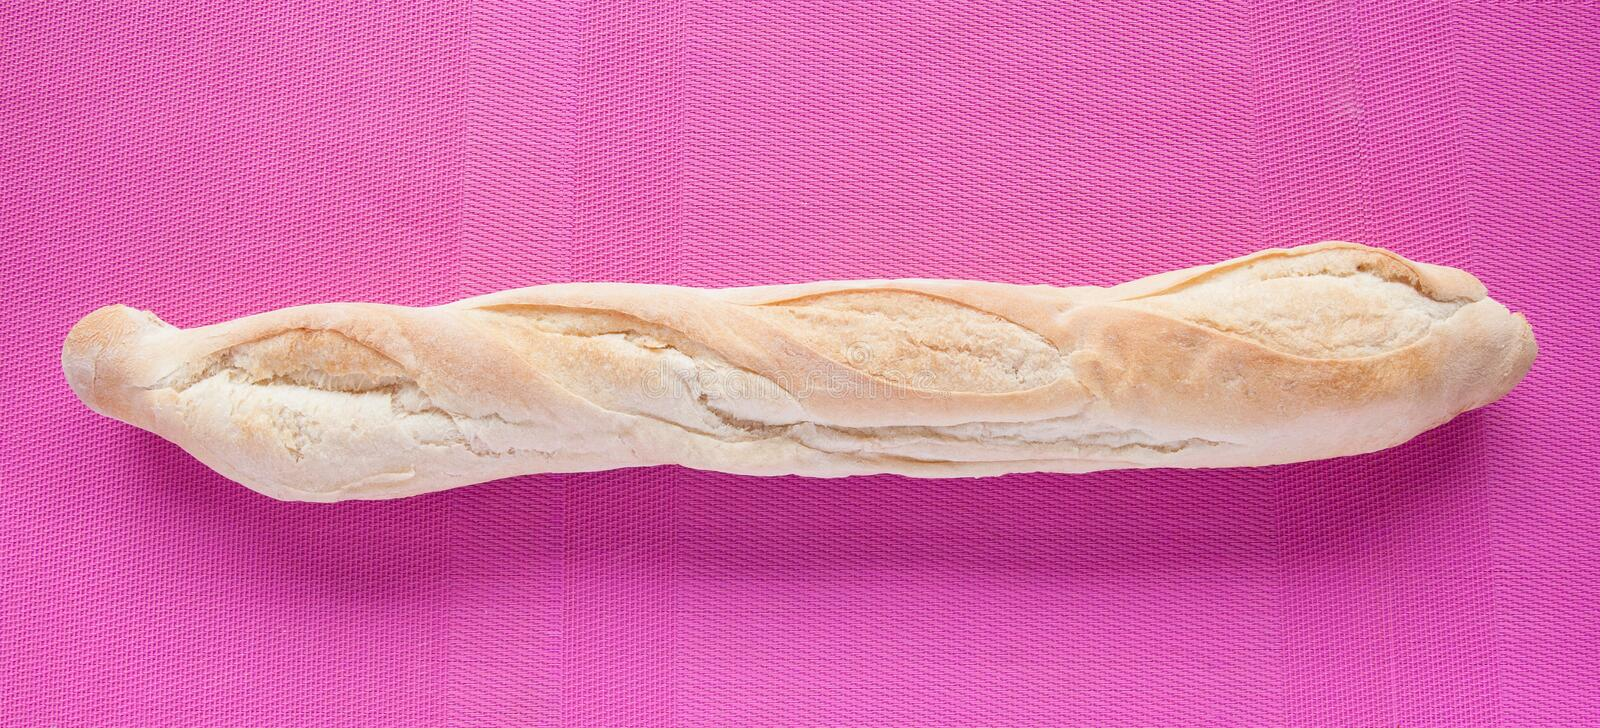 French Bred Baguette Royalty Free Stock Images